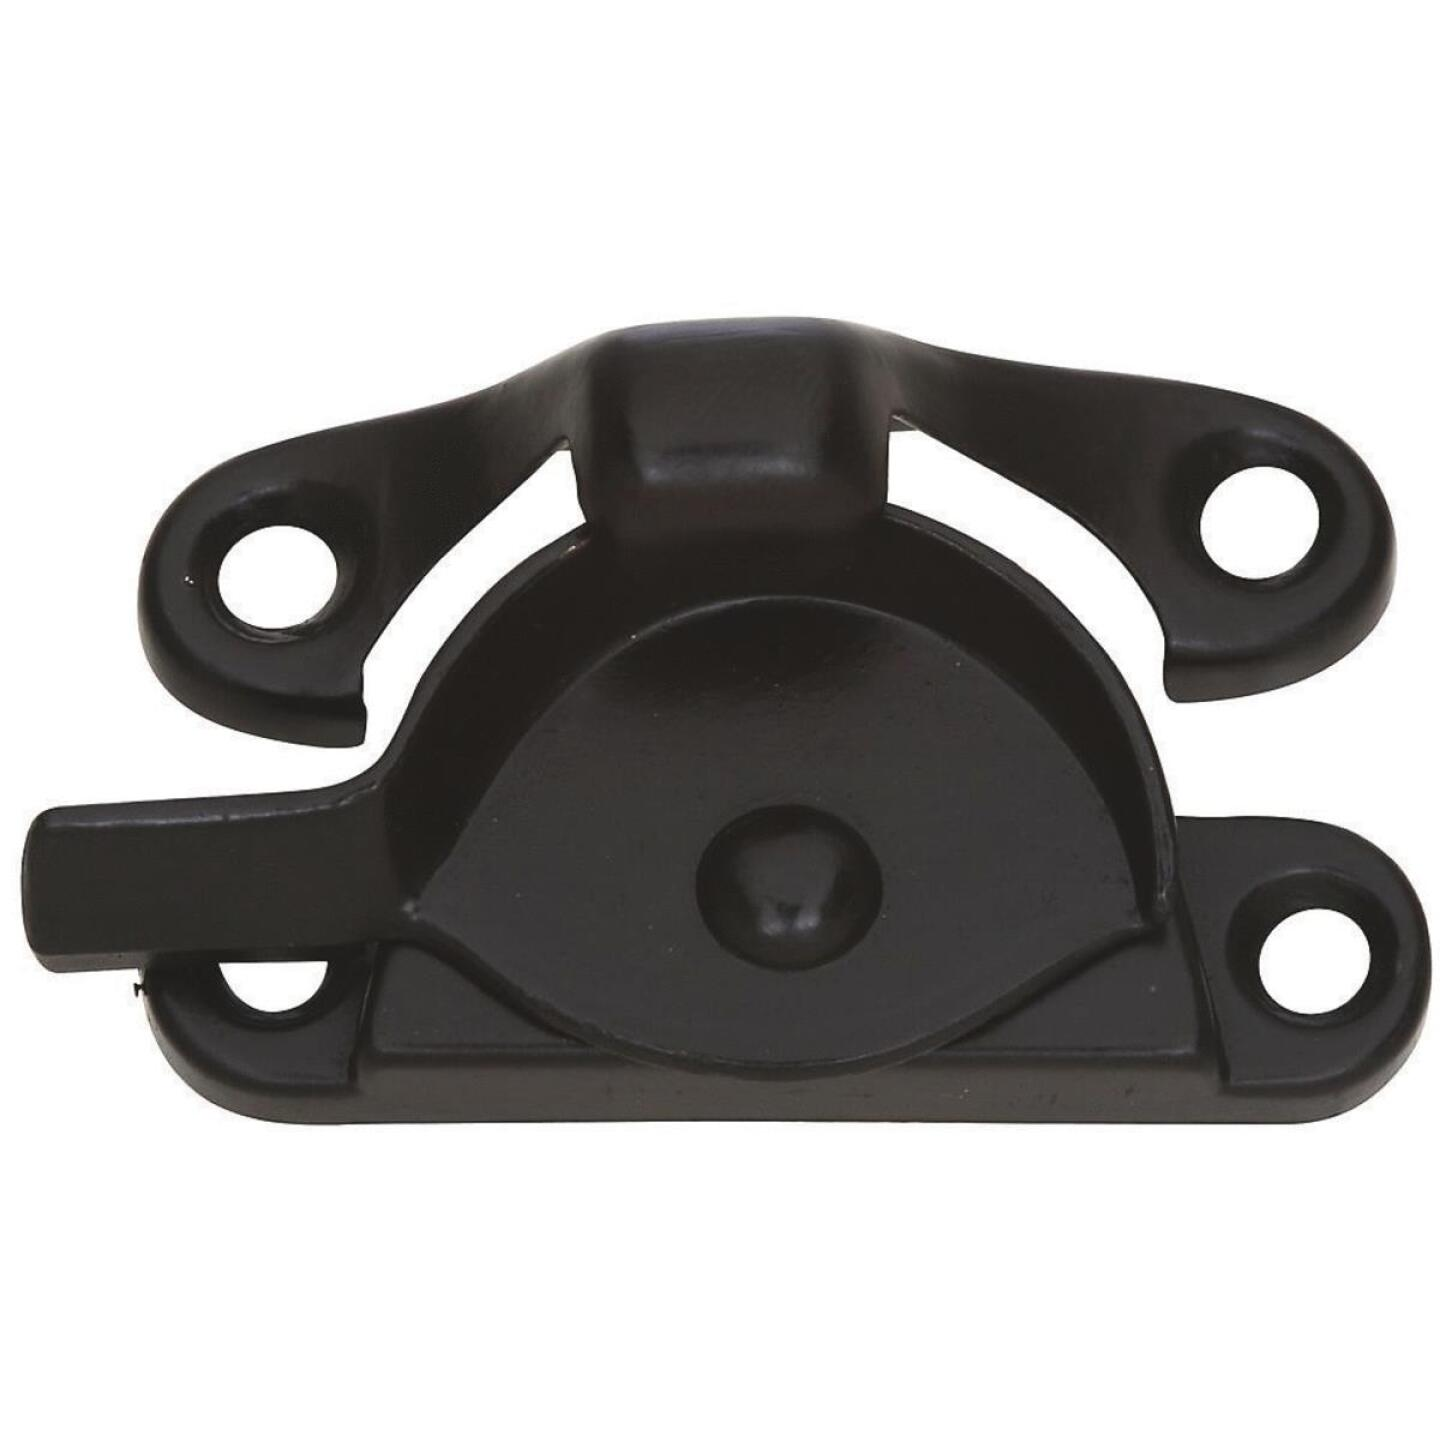 National Double Hung Oil Rubbed Bronze Crescent Sash Lock Image 1